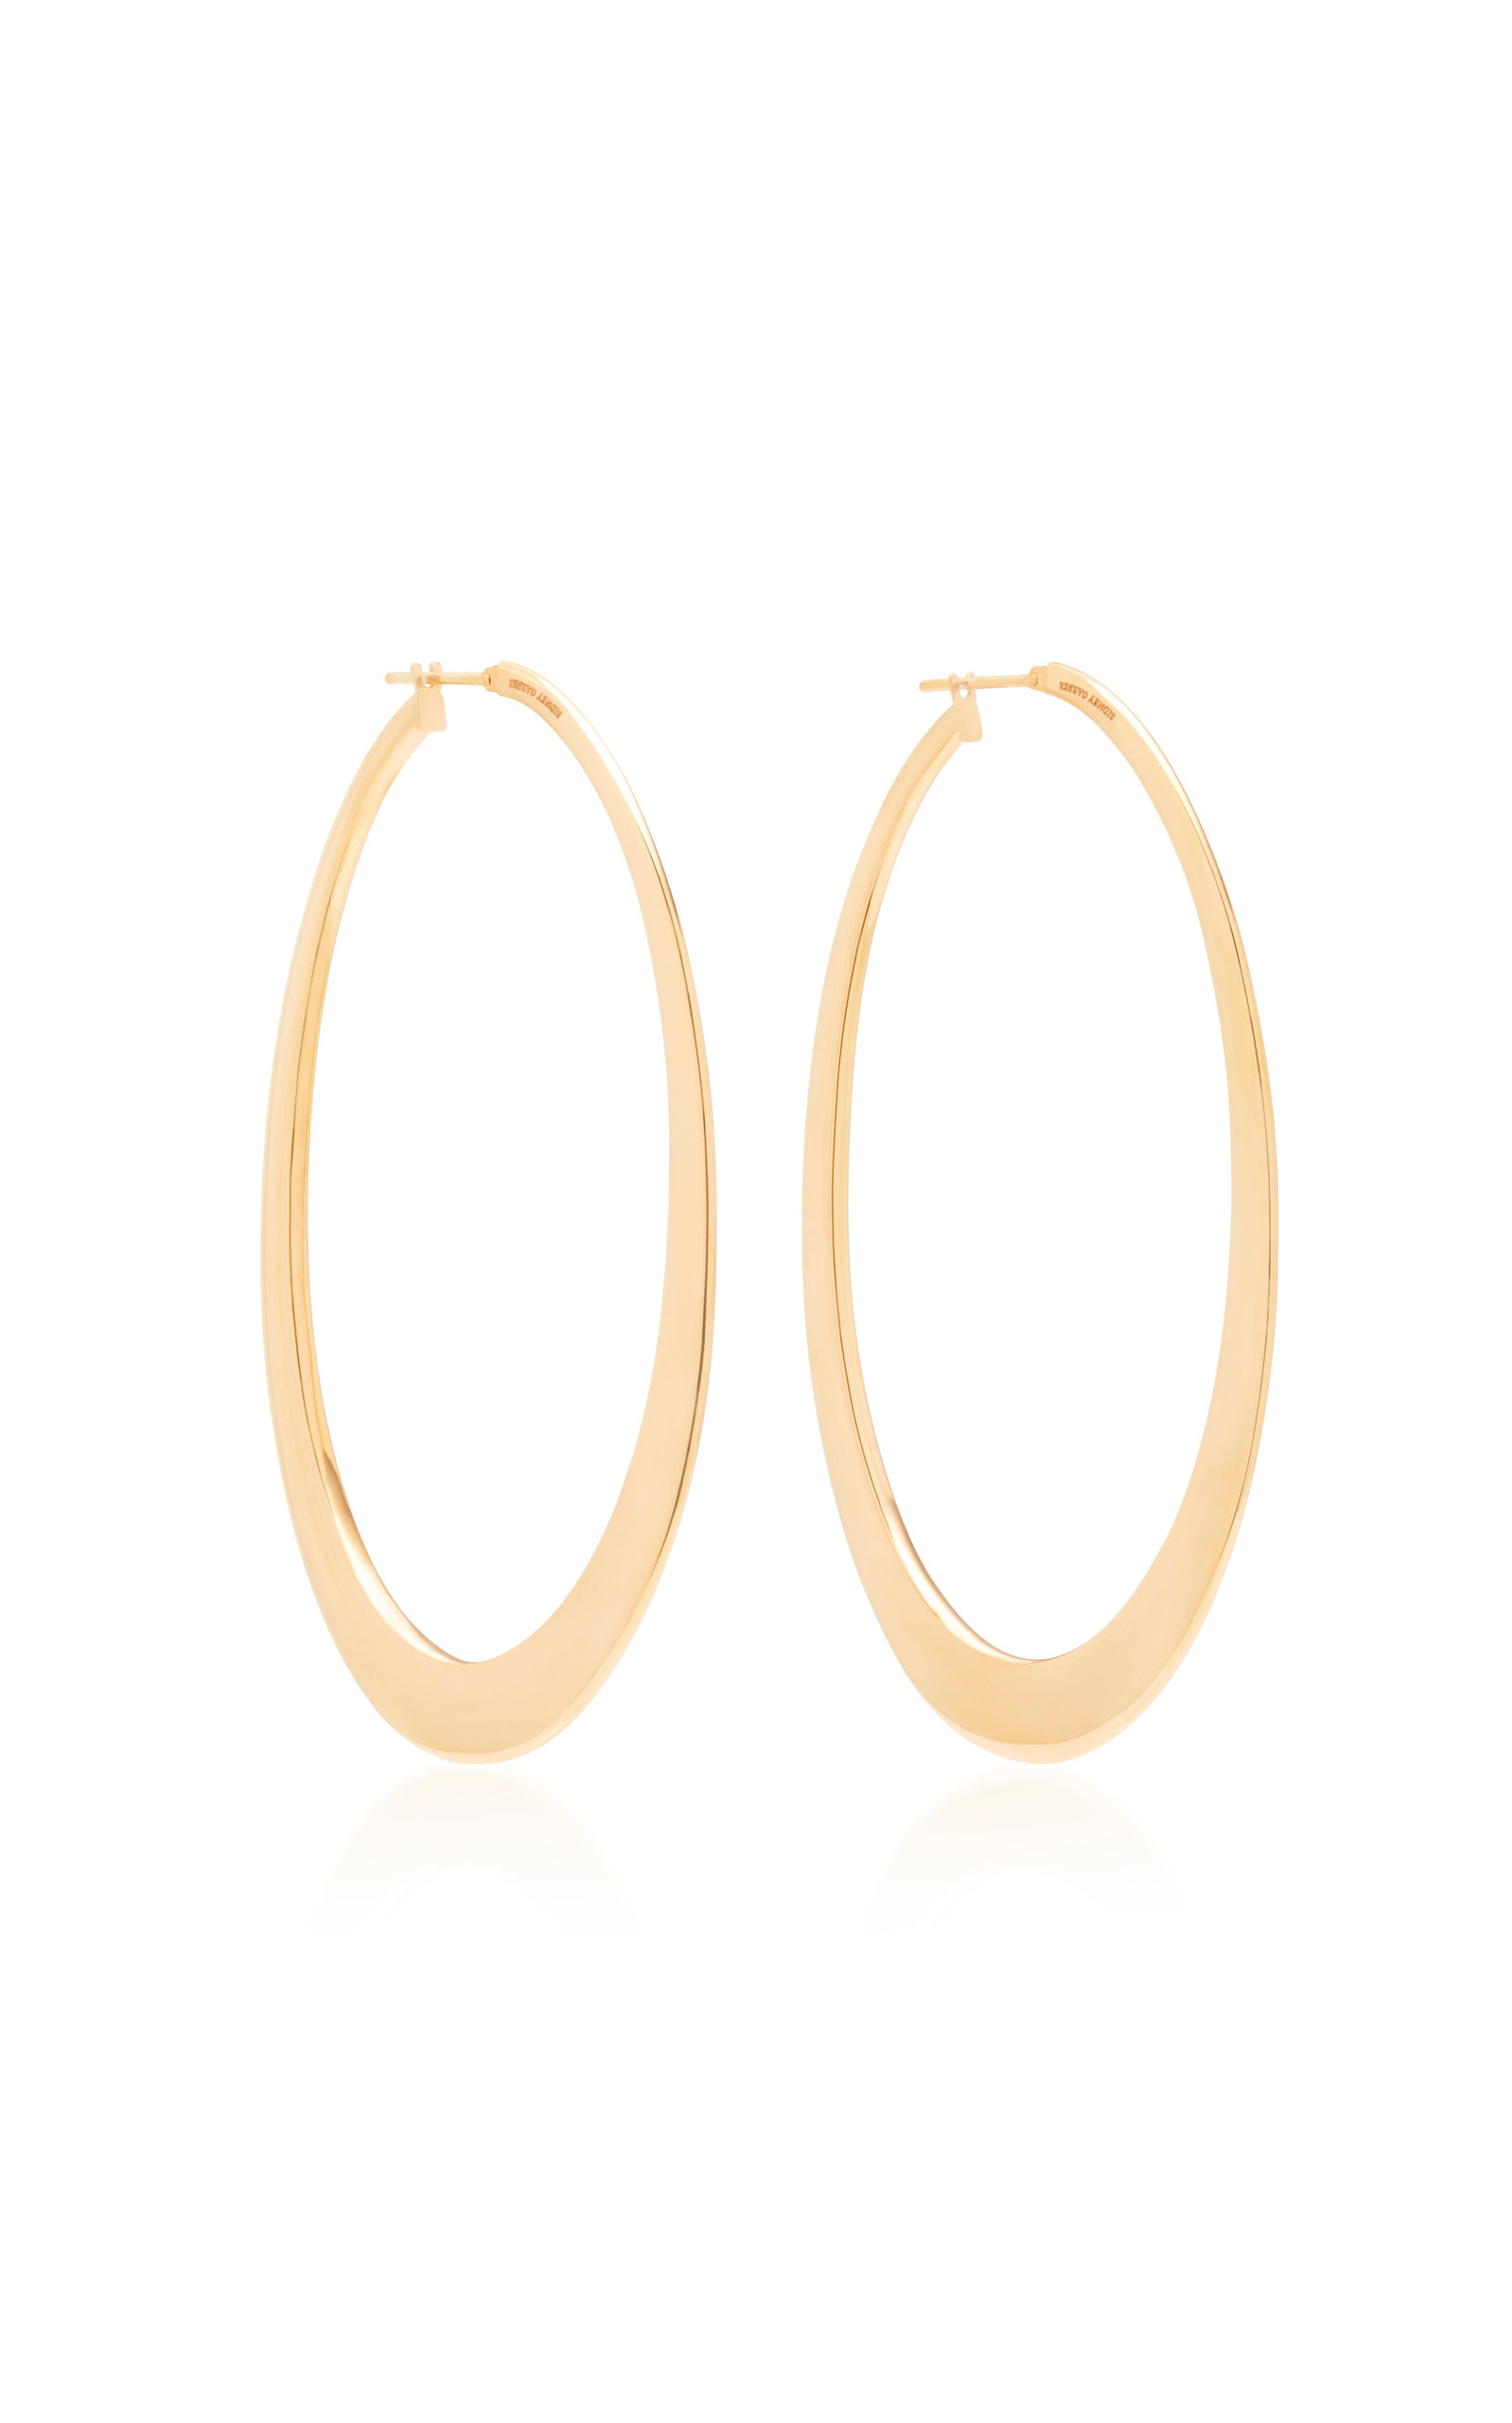 SIDNEY GARBER 18K Rose Gold Hoop Earrings in Pink